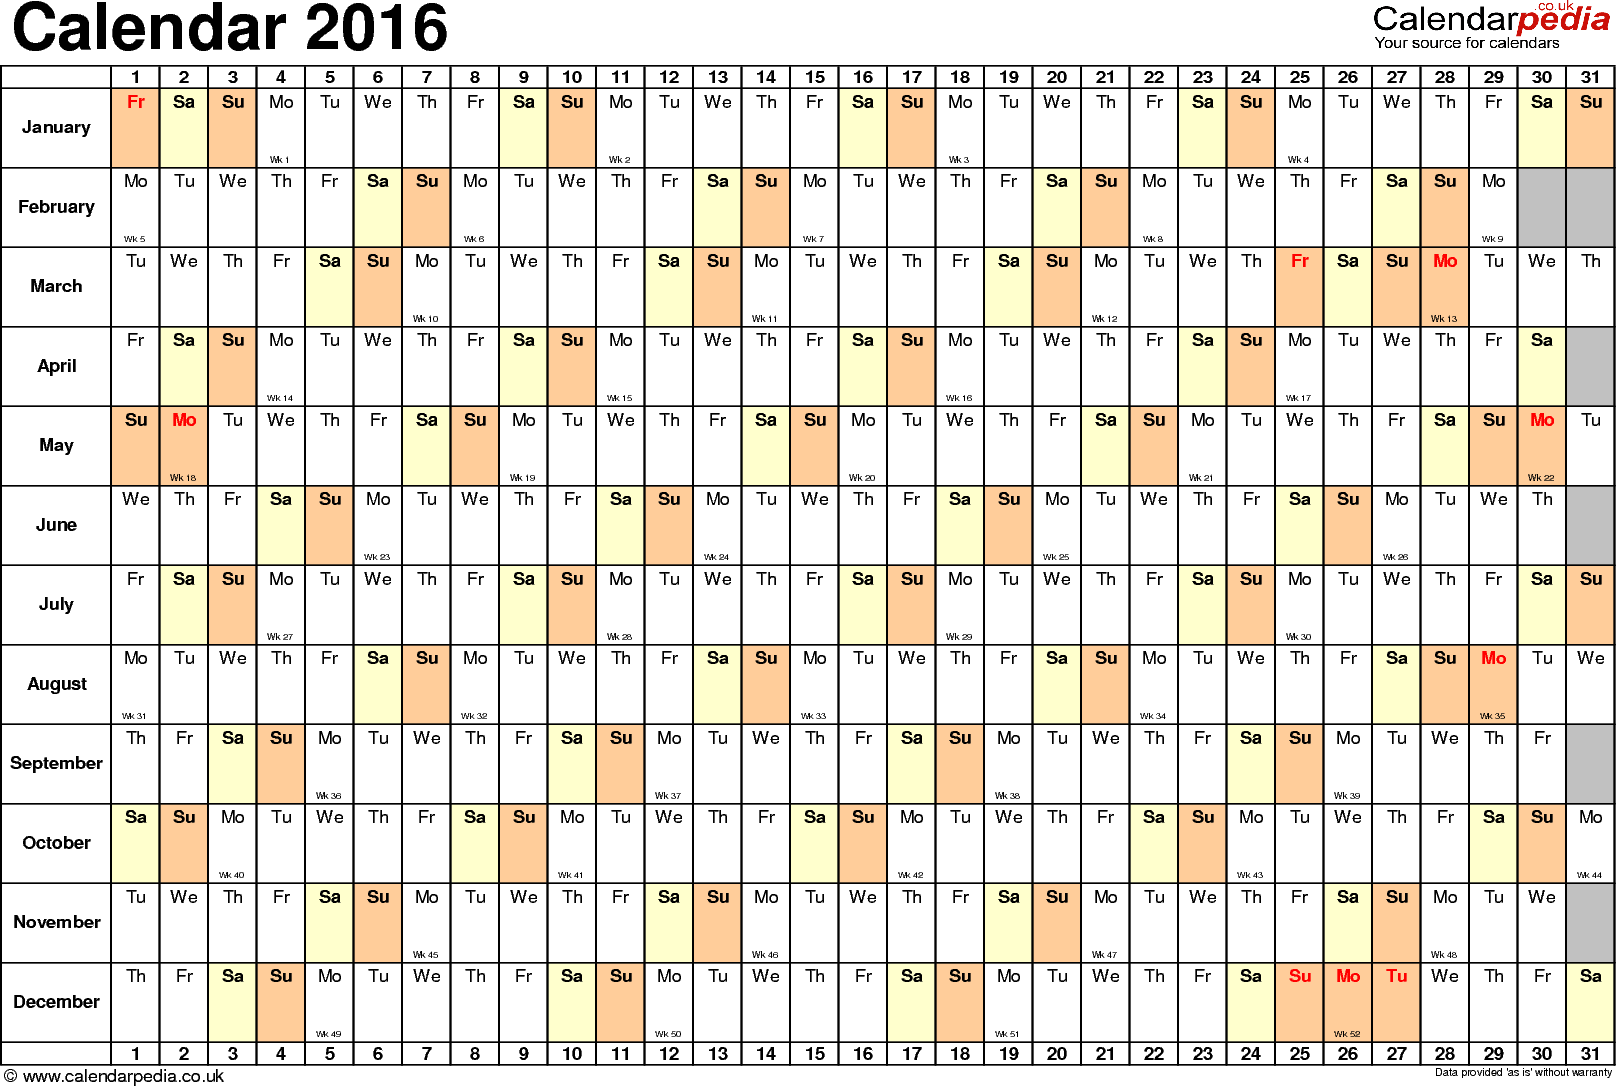 Template 6: Yearly calendar 2016 as PDF template, landscape orientation, 1 page, linear (days horizontally, months vertically), with UK bank holidays and week numbers